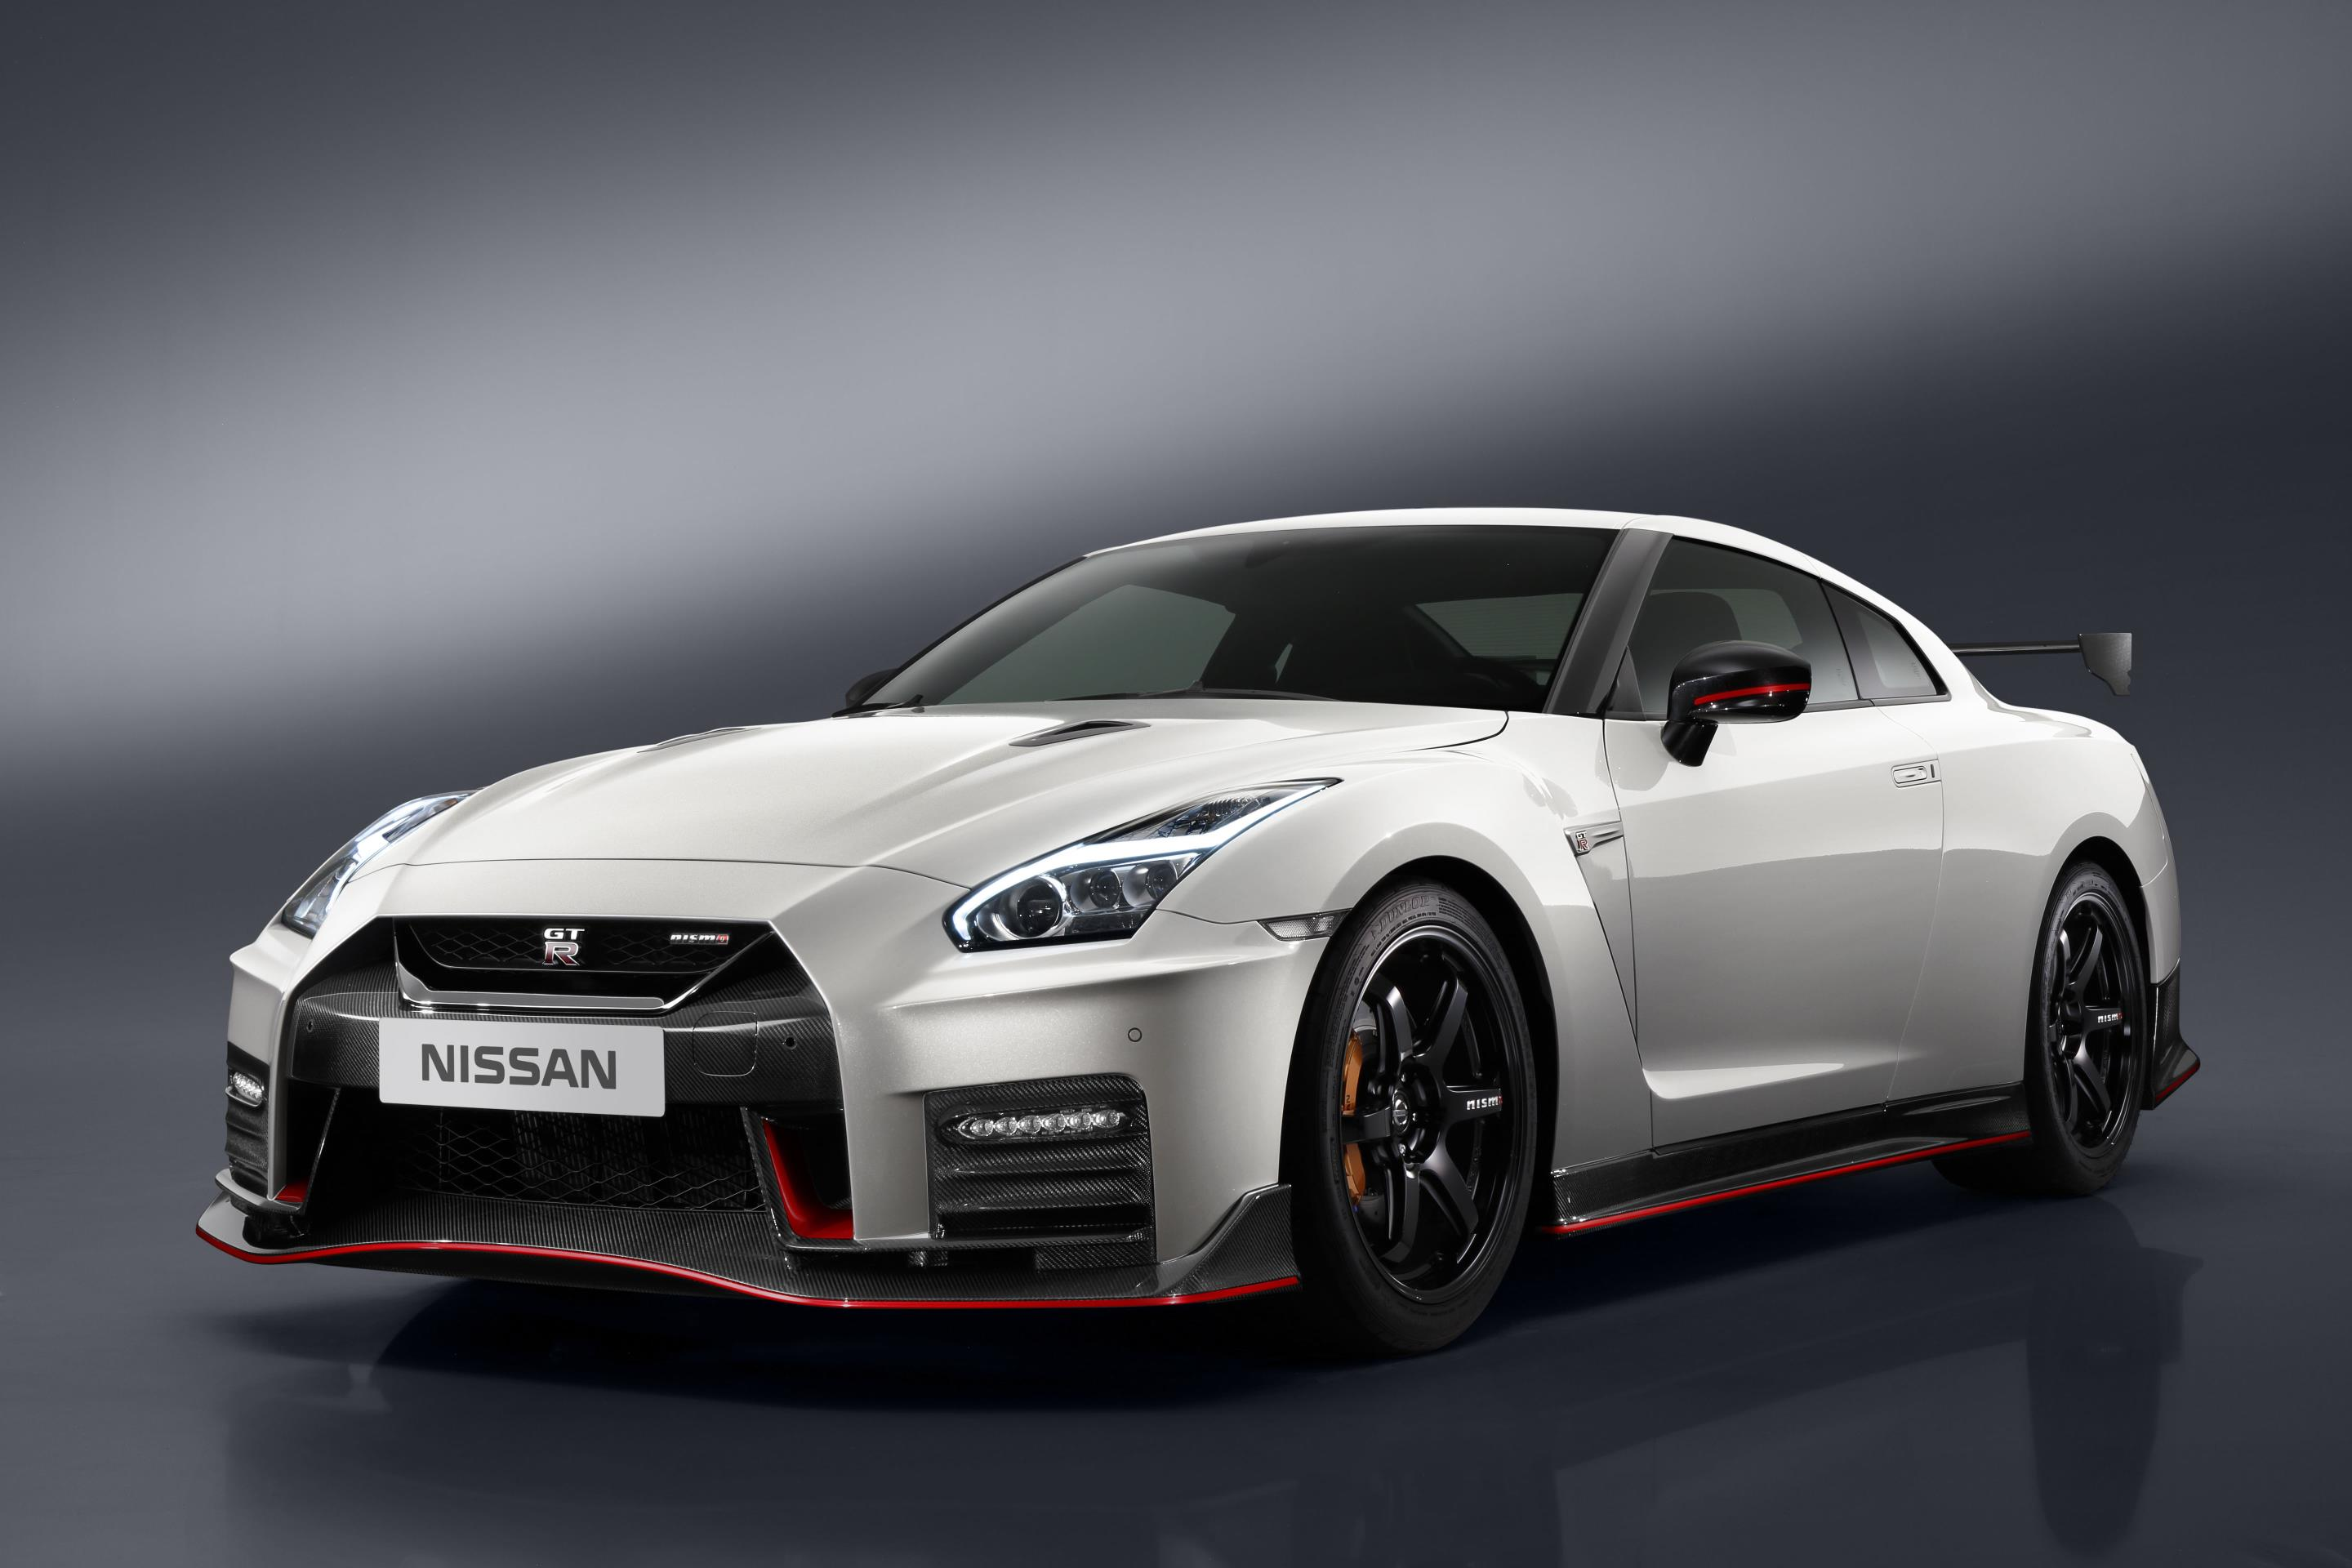 2017 nissan gt r nismo priced from 174 990 in the us gtspirit. Black Bedroom Furniture Sets. Home Design Ideas